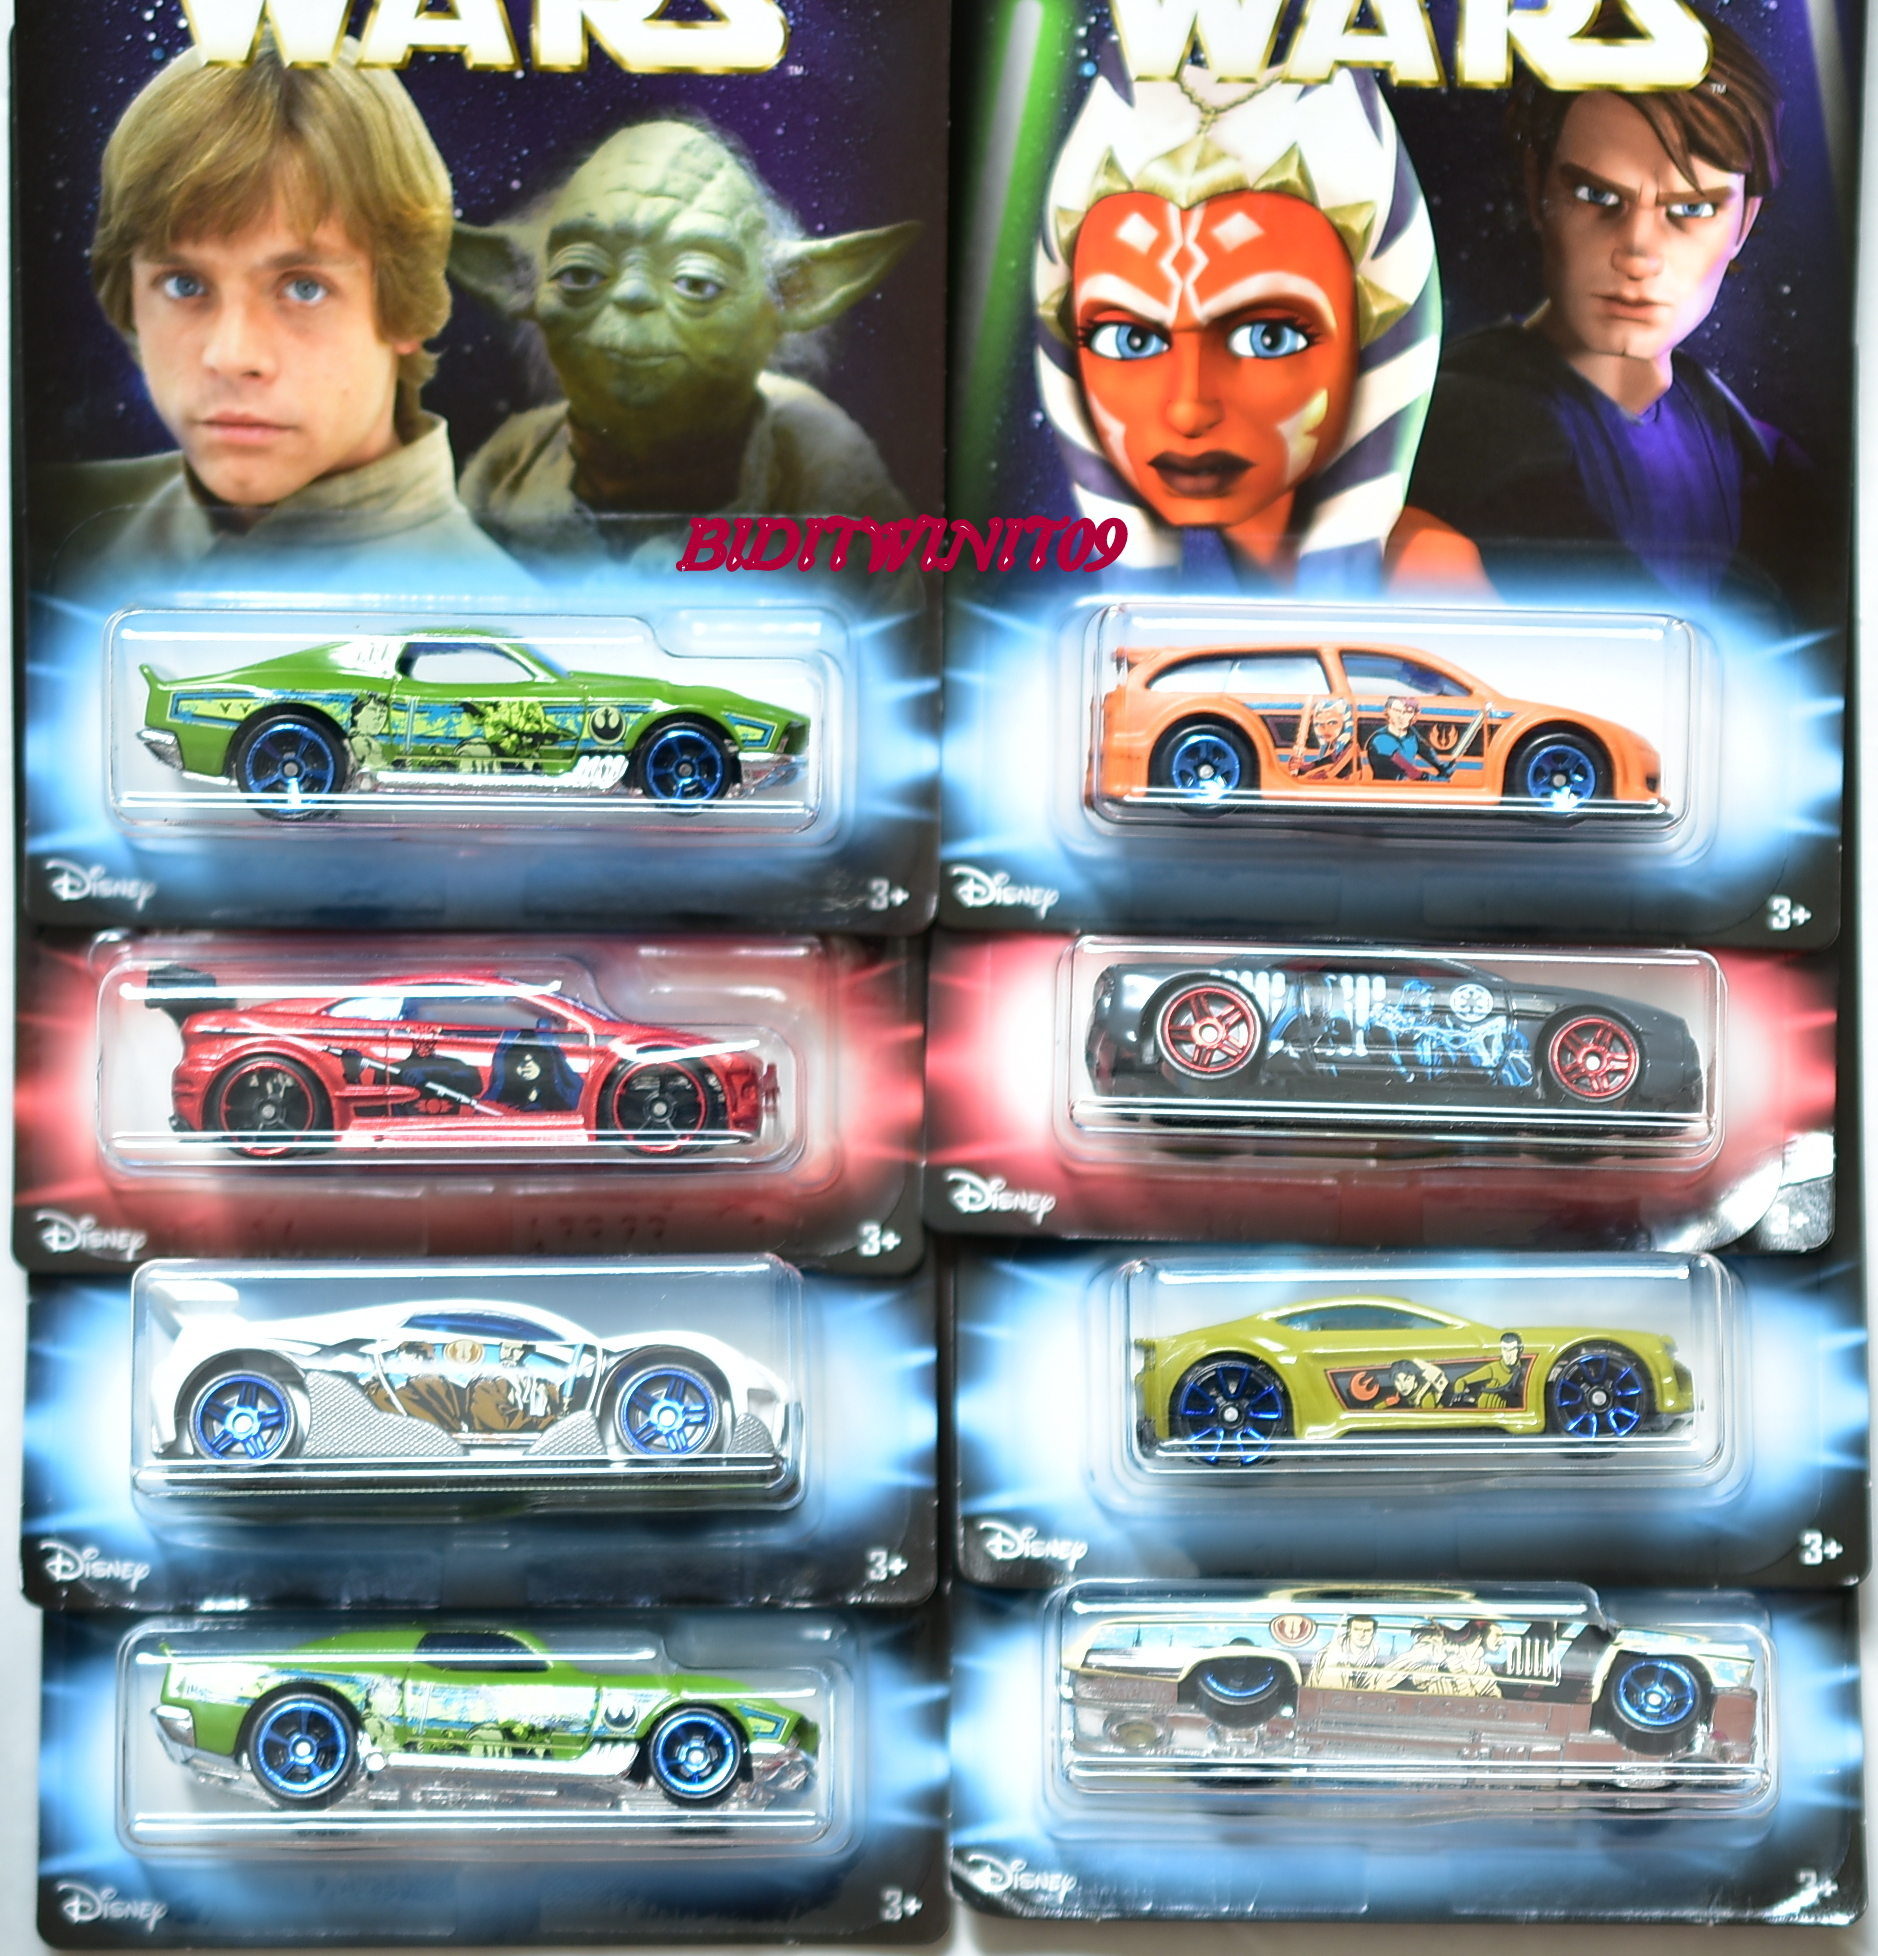 HOT WHEELS 2018 STAR WARS COMPLETE SET OF 8 FISH'D & CHIPS - ASPHALT ASSAULT